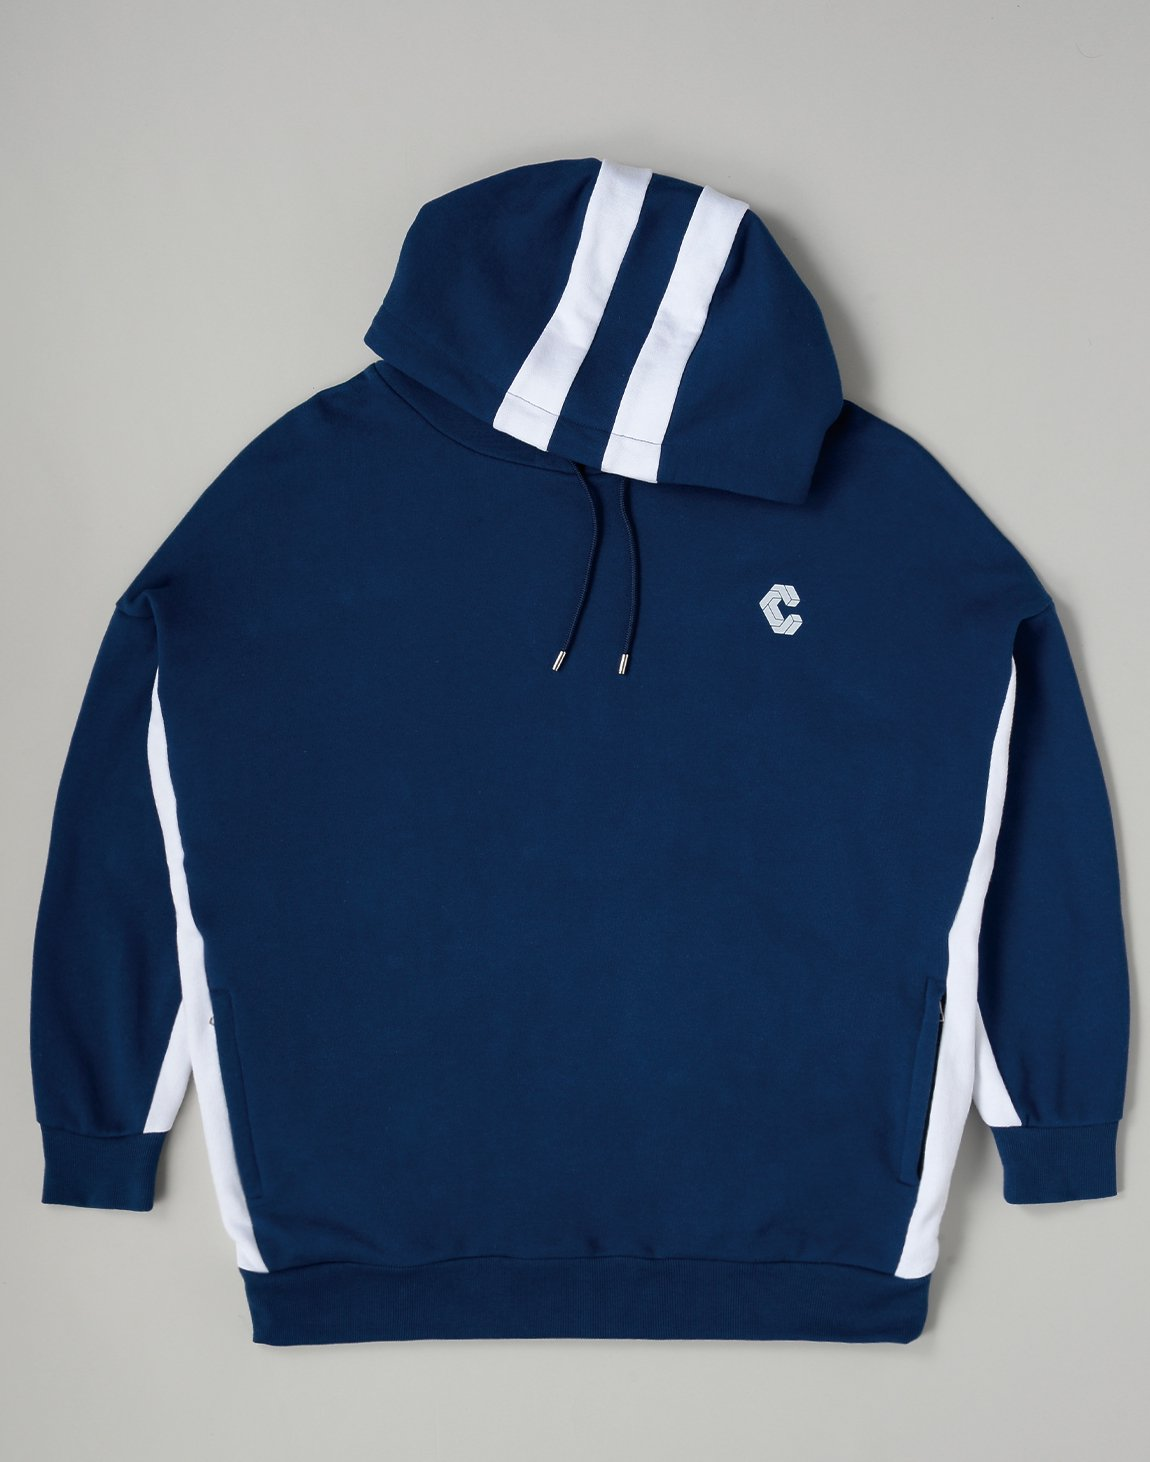 <img class='new_mark_img1' src='https://img.shop-pro.jp/img/new/icons1.gif' style='border:none;display:inline;margin:0px;padding:0px;width:auto;' />CRONOS 2STRIPE HOODIE【NAVY】